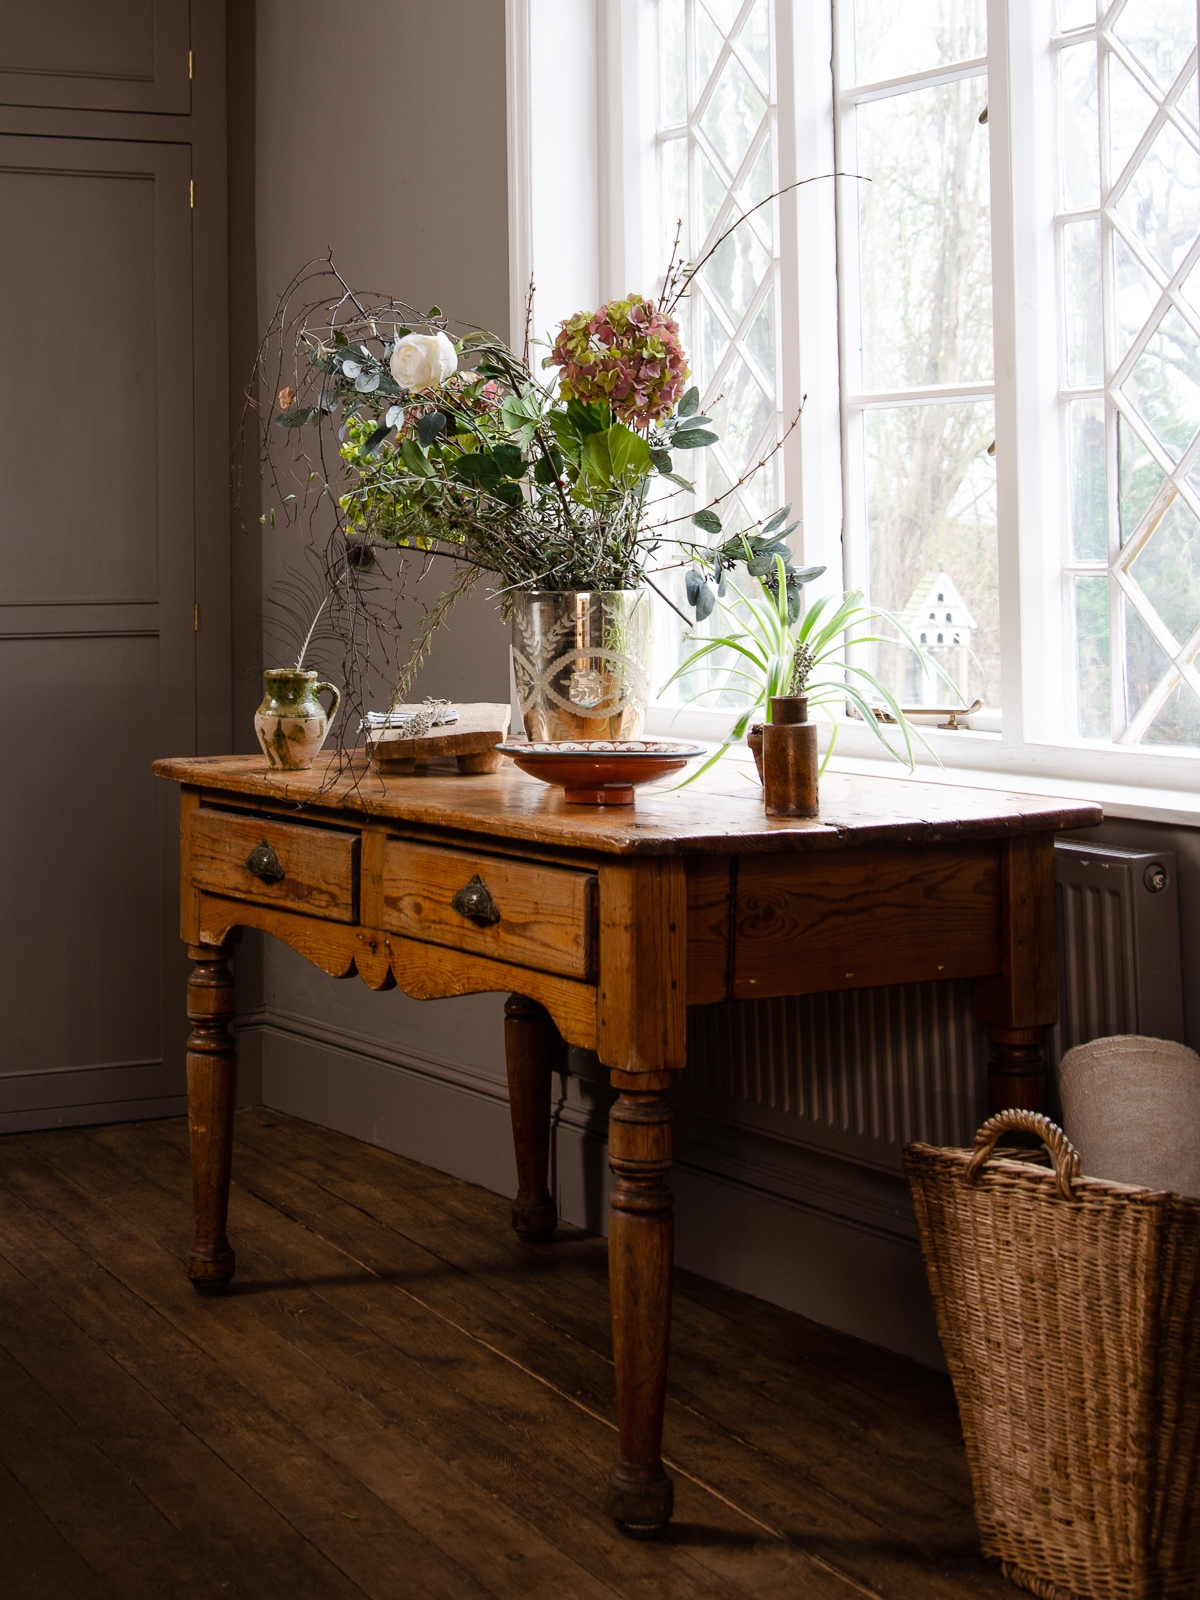 Antique Pine Table with Two Drawers in our Millhouse Kitchen